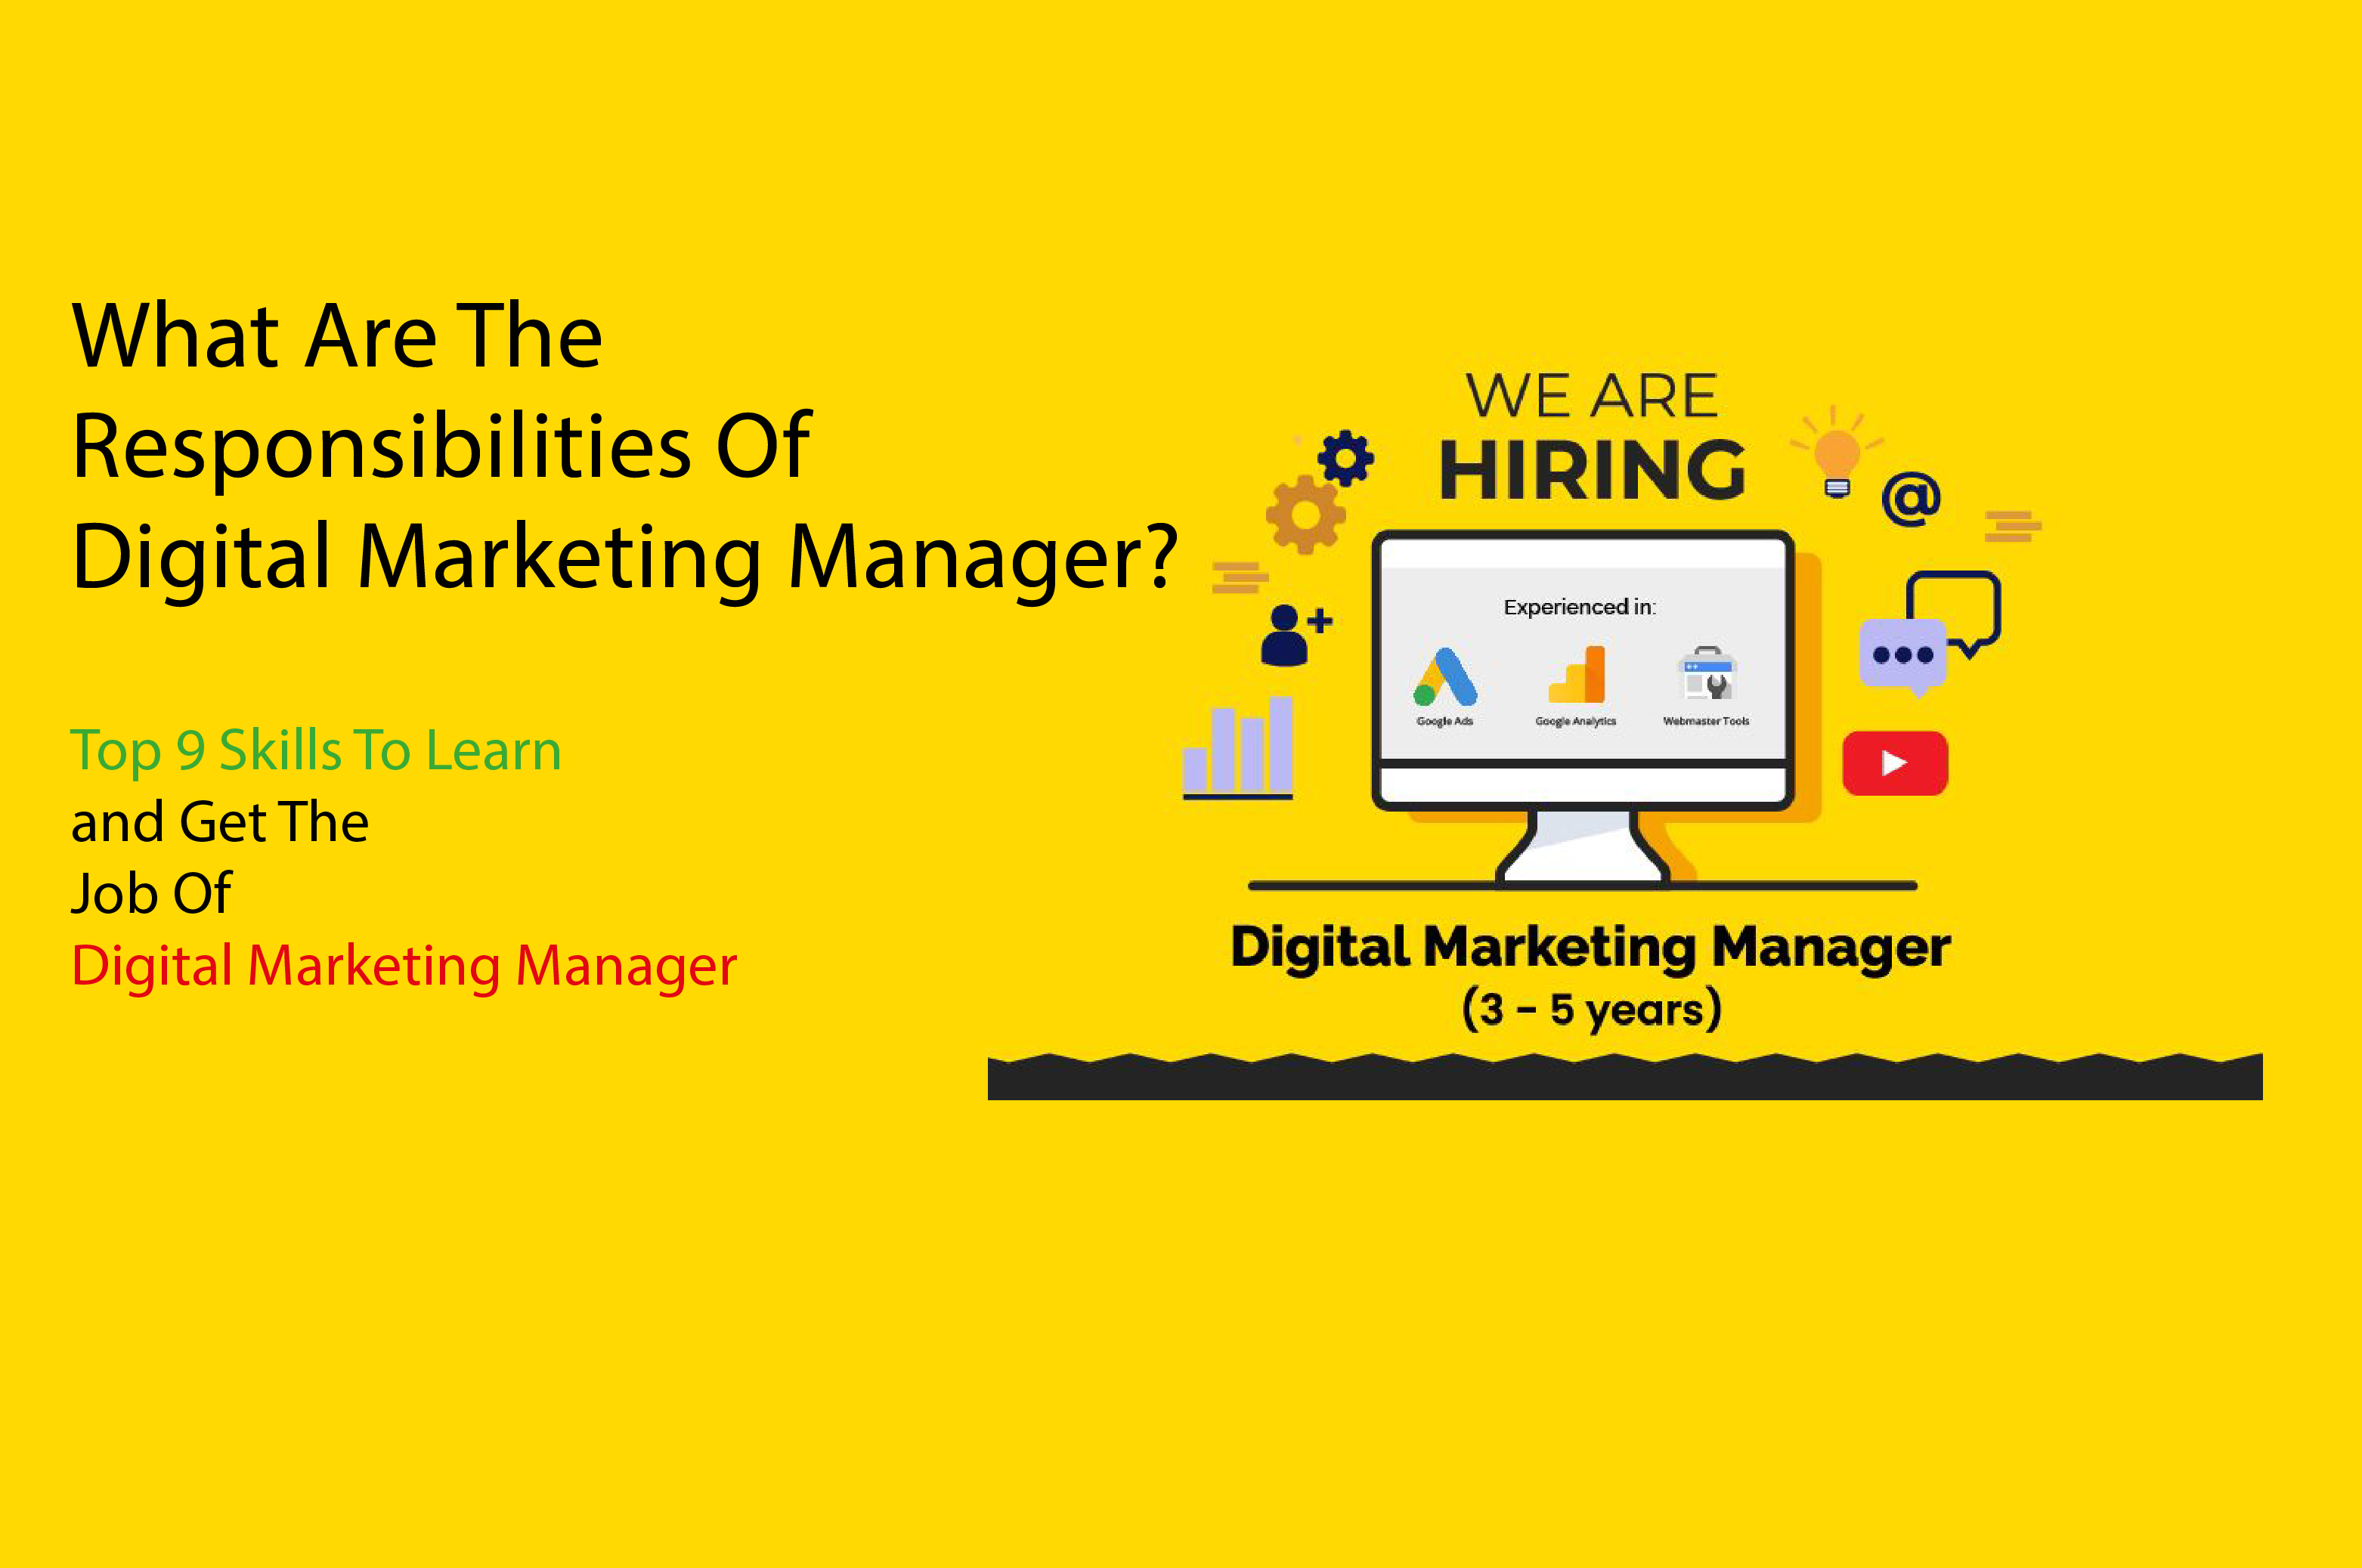 What Are The Responsibilites of digital marketing manager